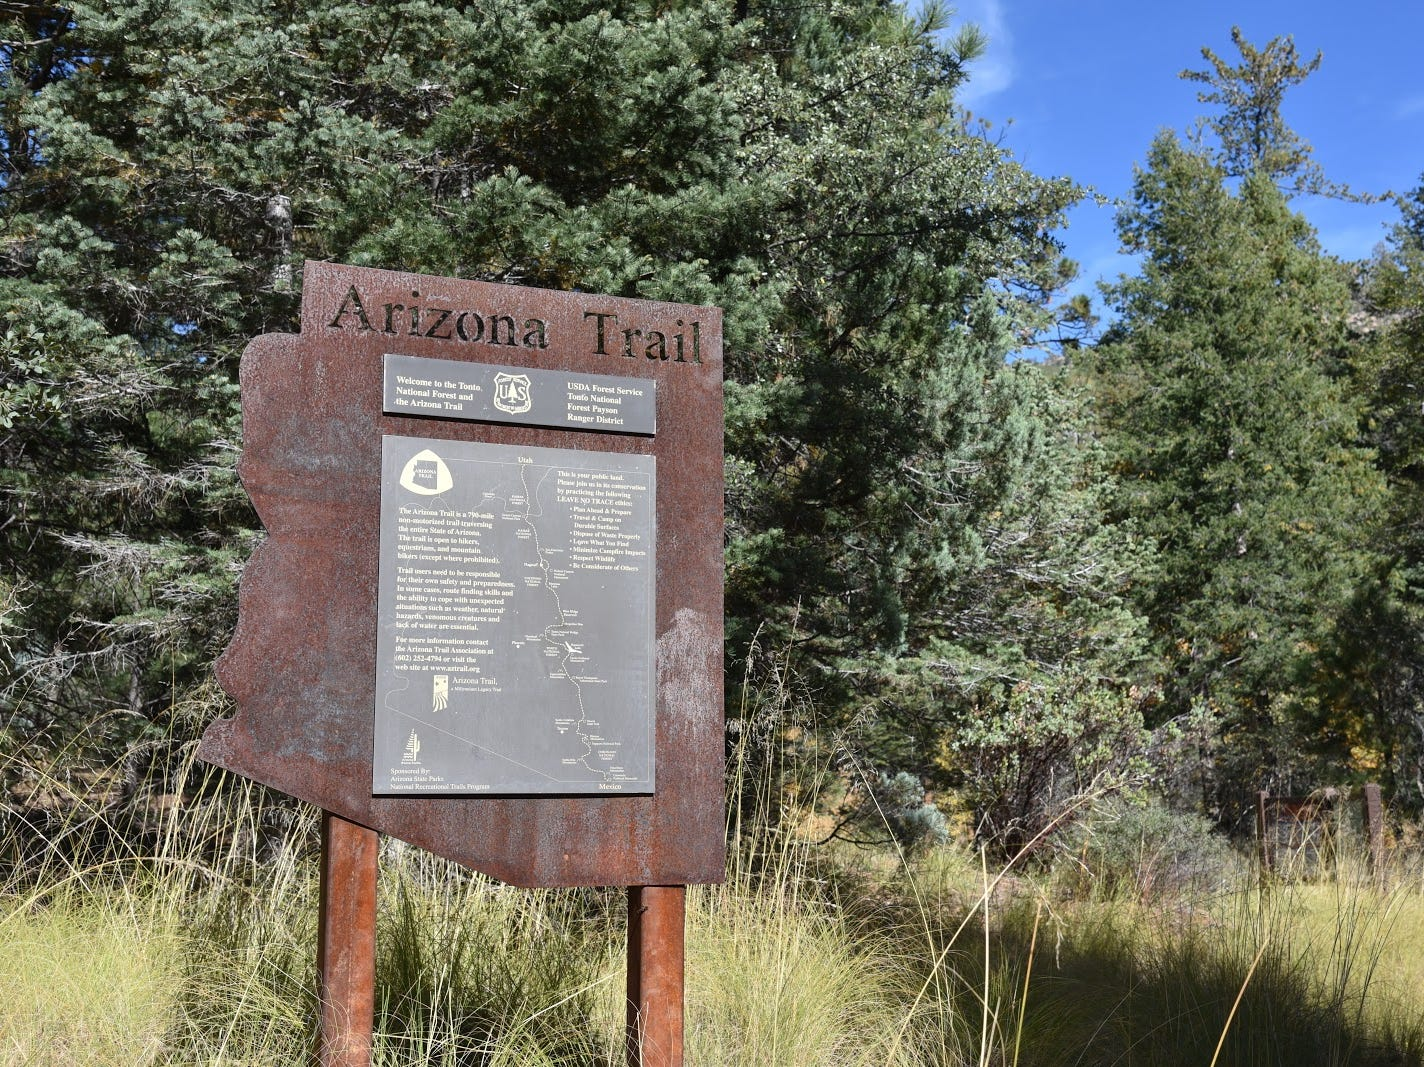 The Col. Devin Trail is part of the Arizona Trail.